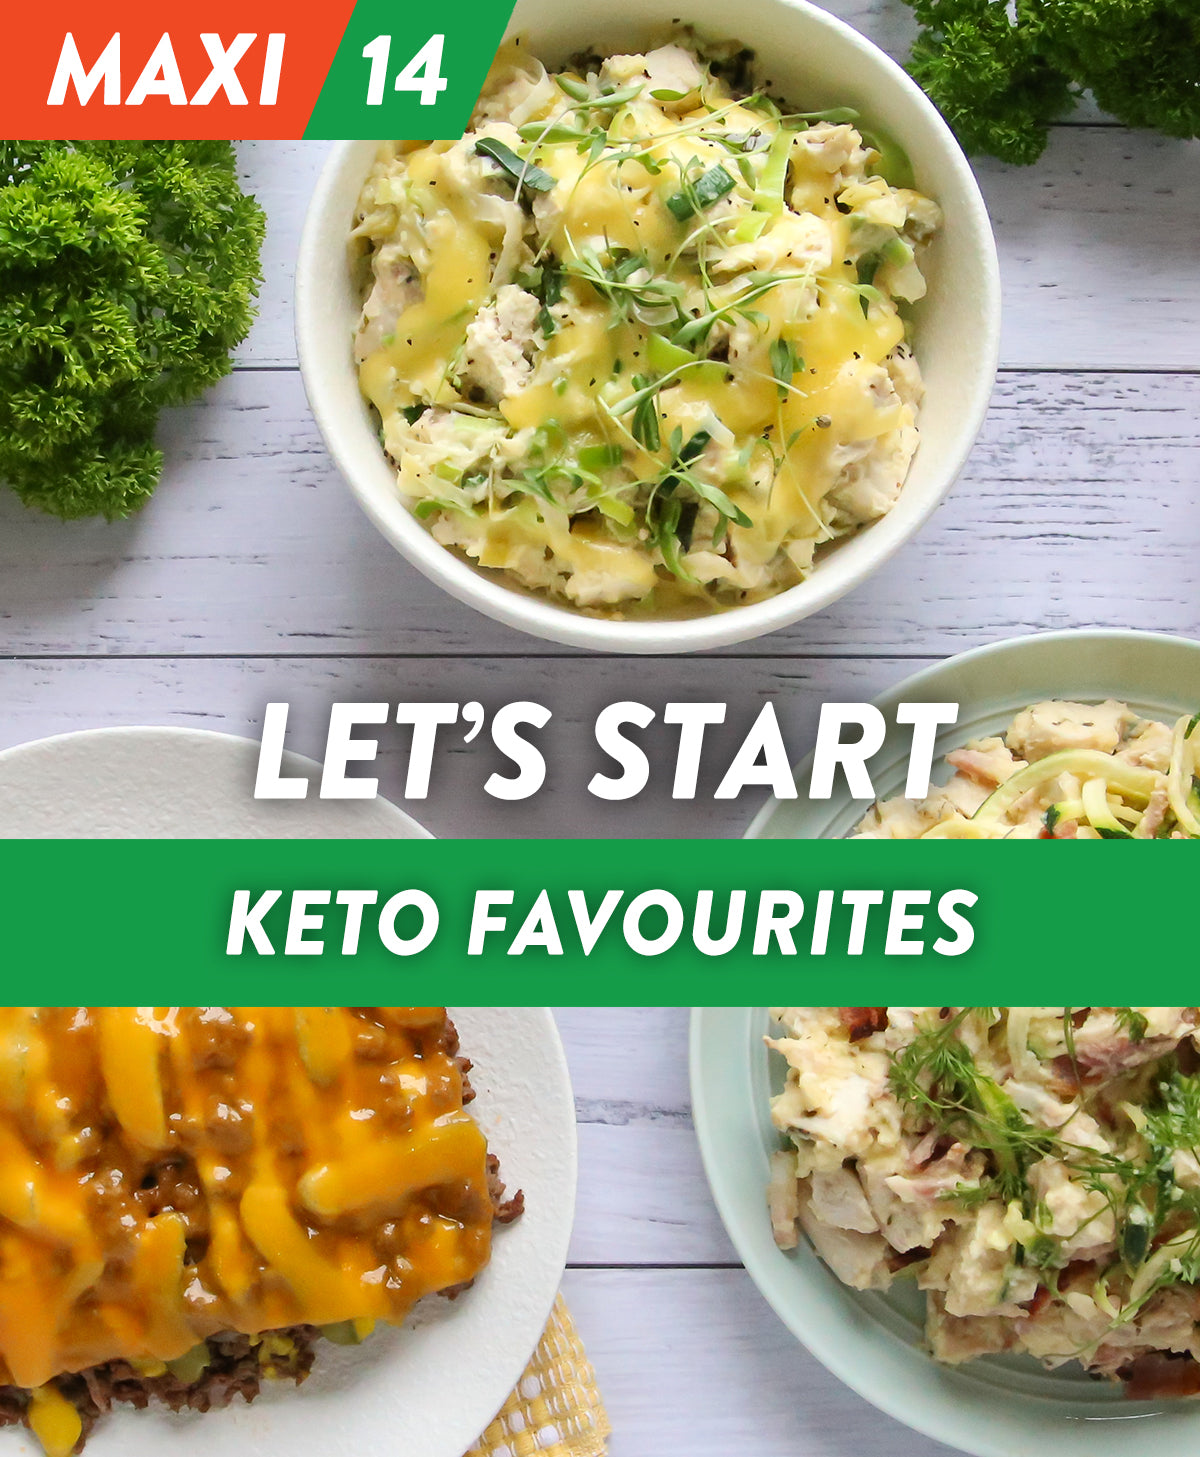 Let's Start - Keto Favourites MAXI 14